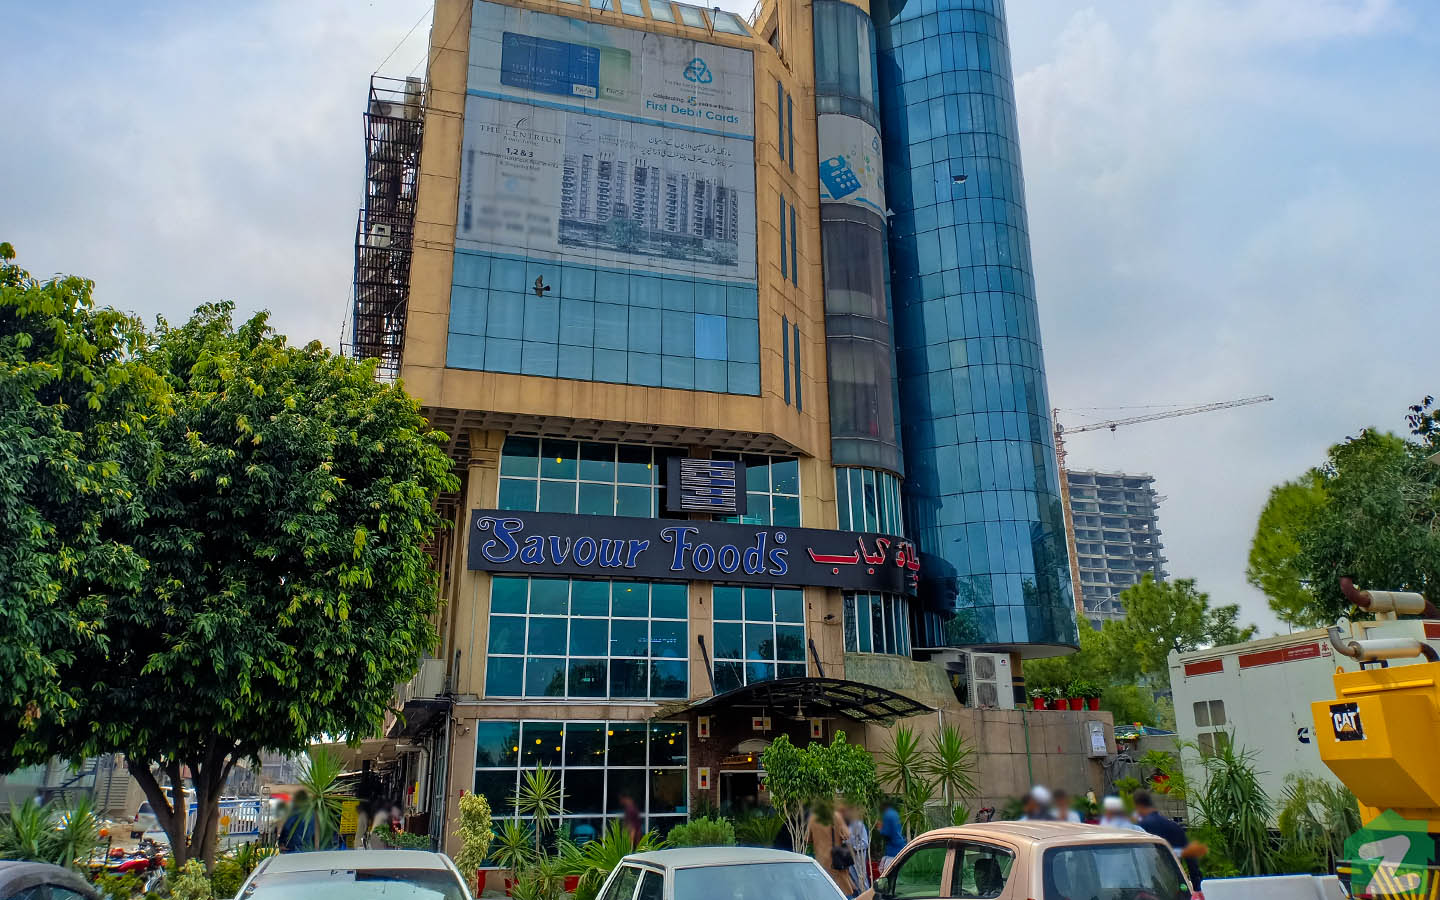 Eating spots of Blue Area Islamabad